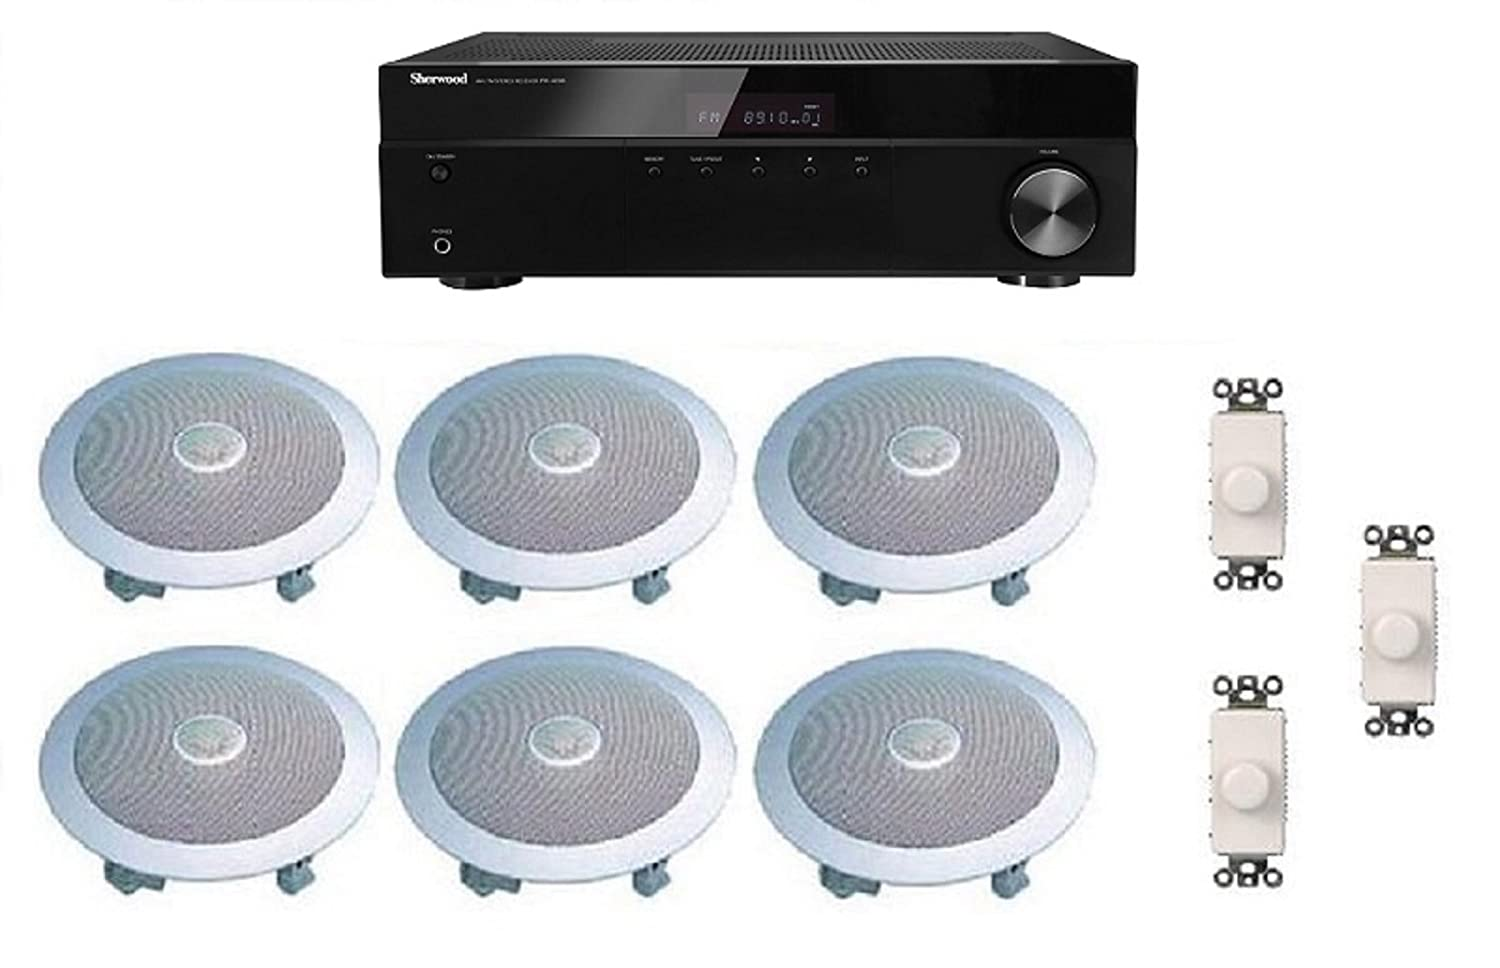 Distributed Home Audio Whole House Sound System- Ceiling Speakers and Wall Volume Controls for 3+ Rooms